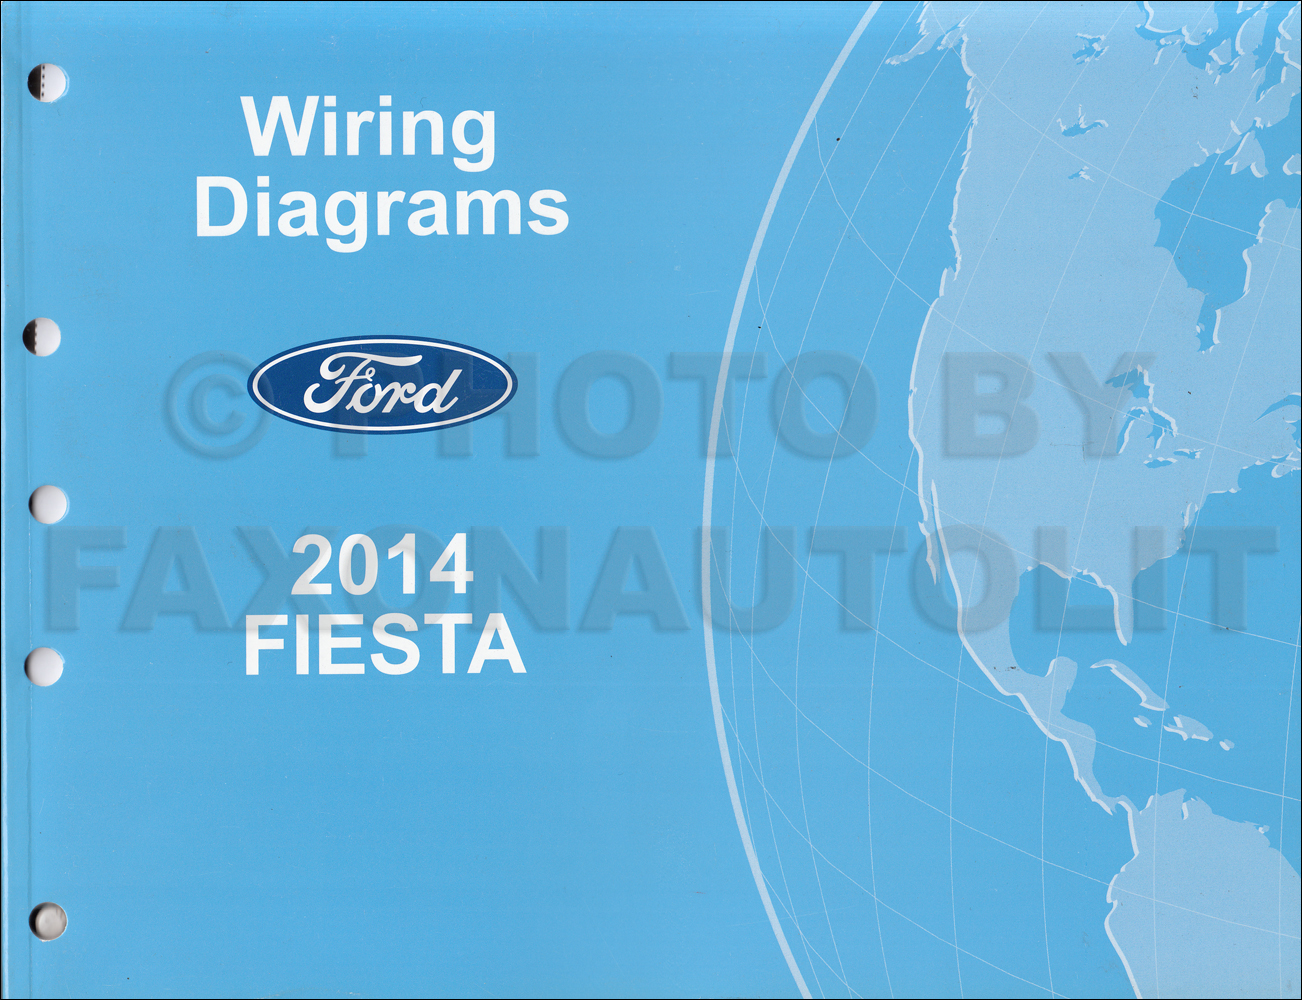 2013 Ford Fiesta P0340 Wiring Diagram